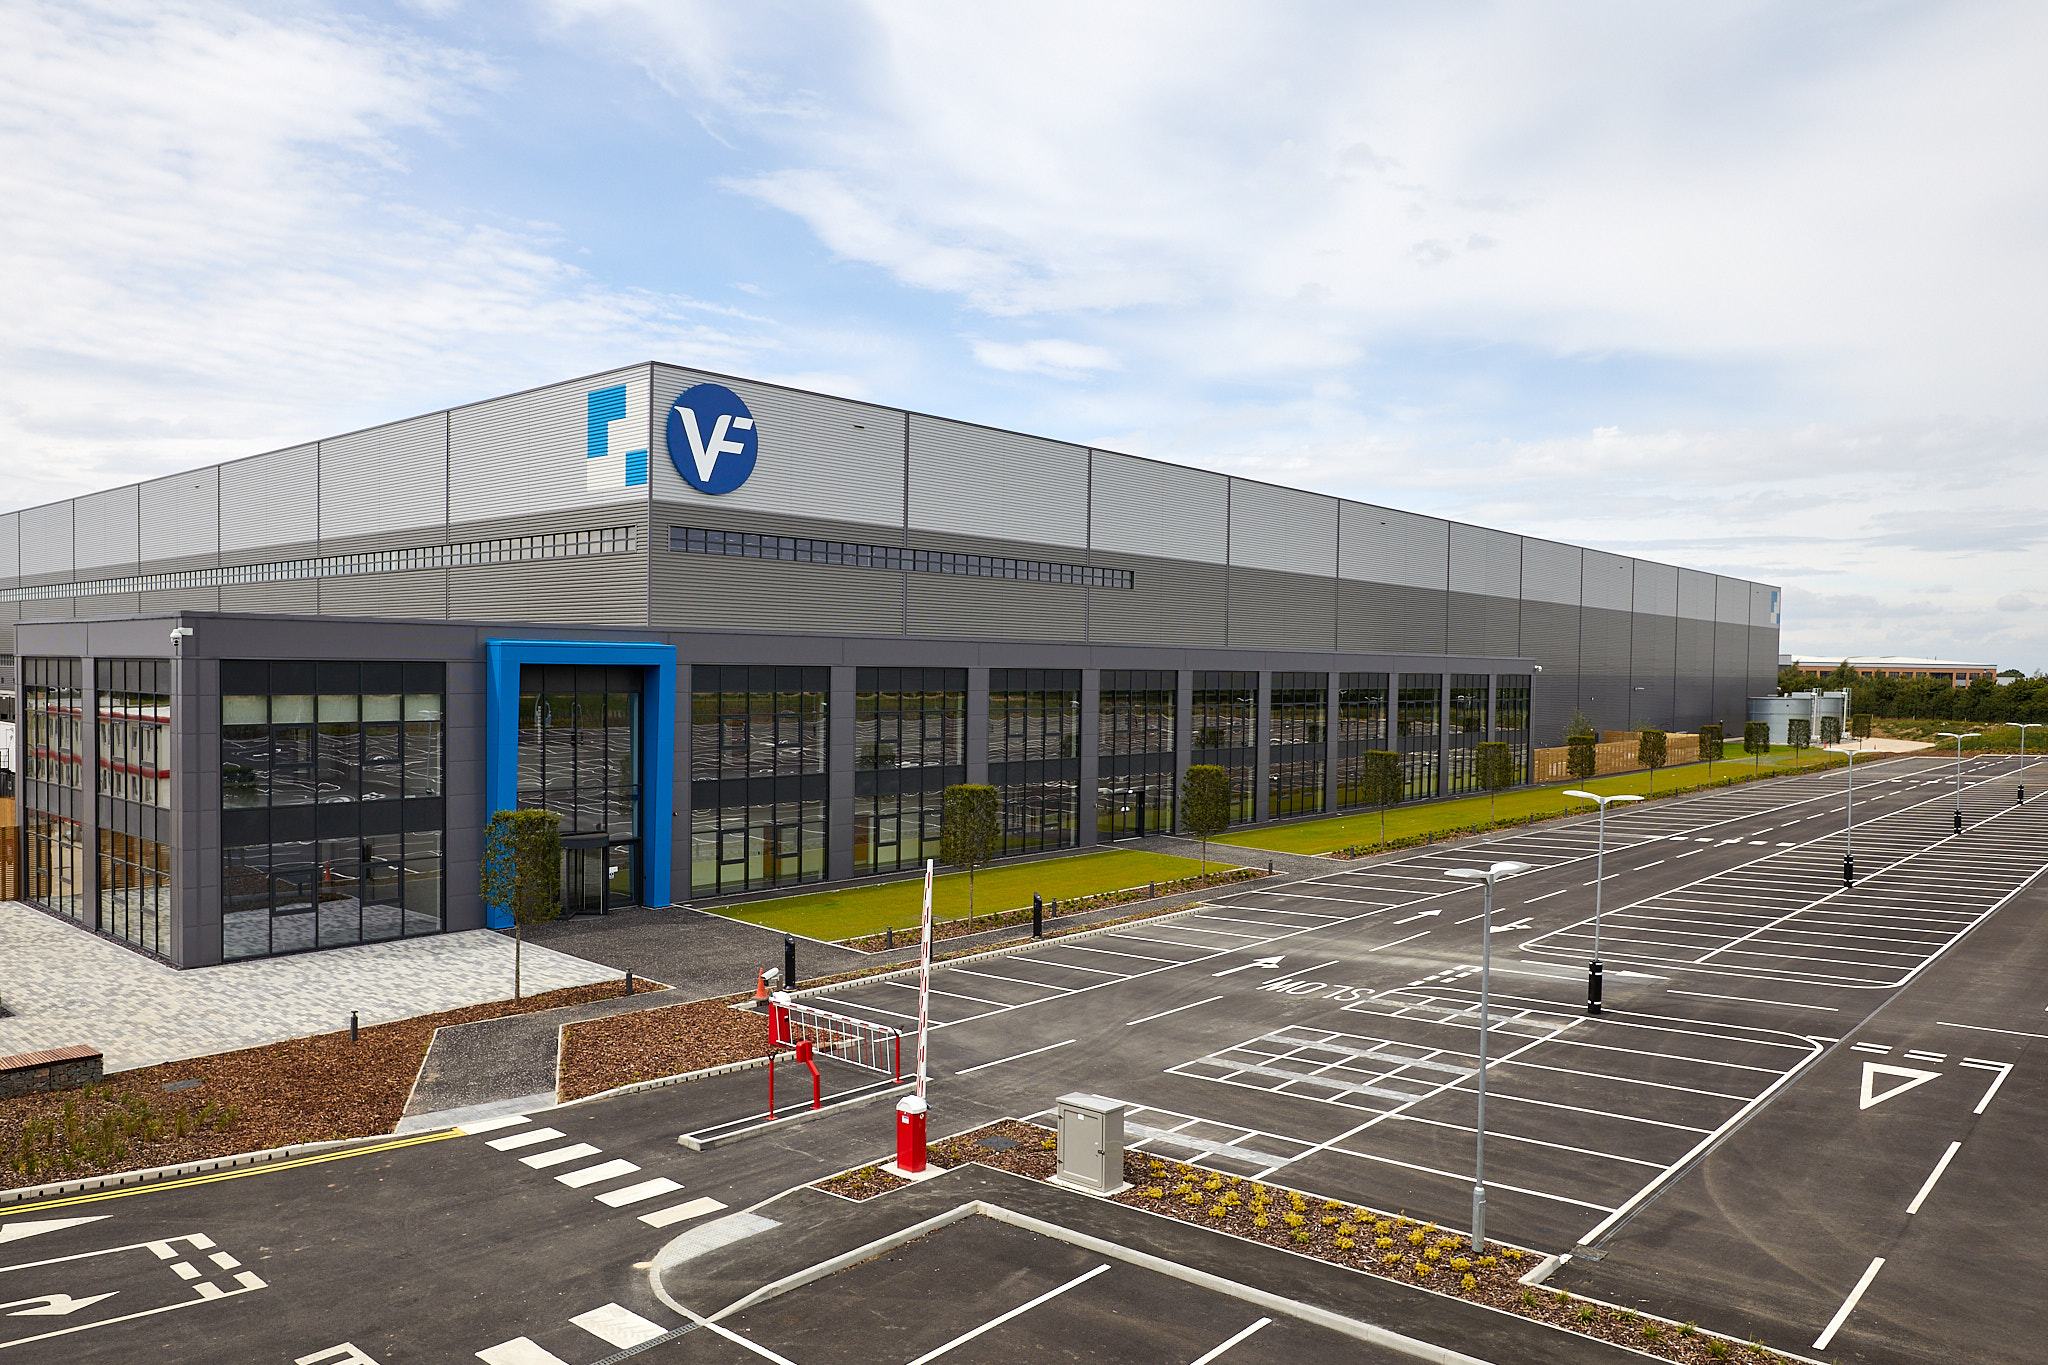 The VF Corporation, through its local subsidiary VF Northern Europe Limited, has announced it has begun operations at its new multimillion-pound fulfilment centre in Bardon, Leicestershire, employing approximately 250 people during peak periods.